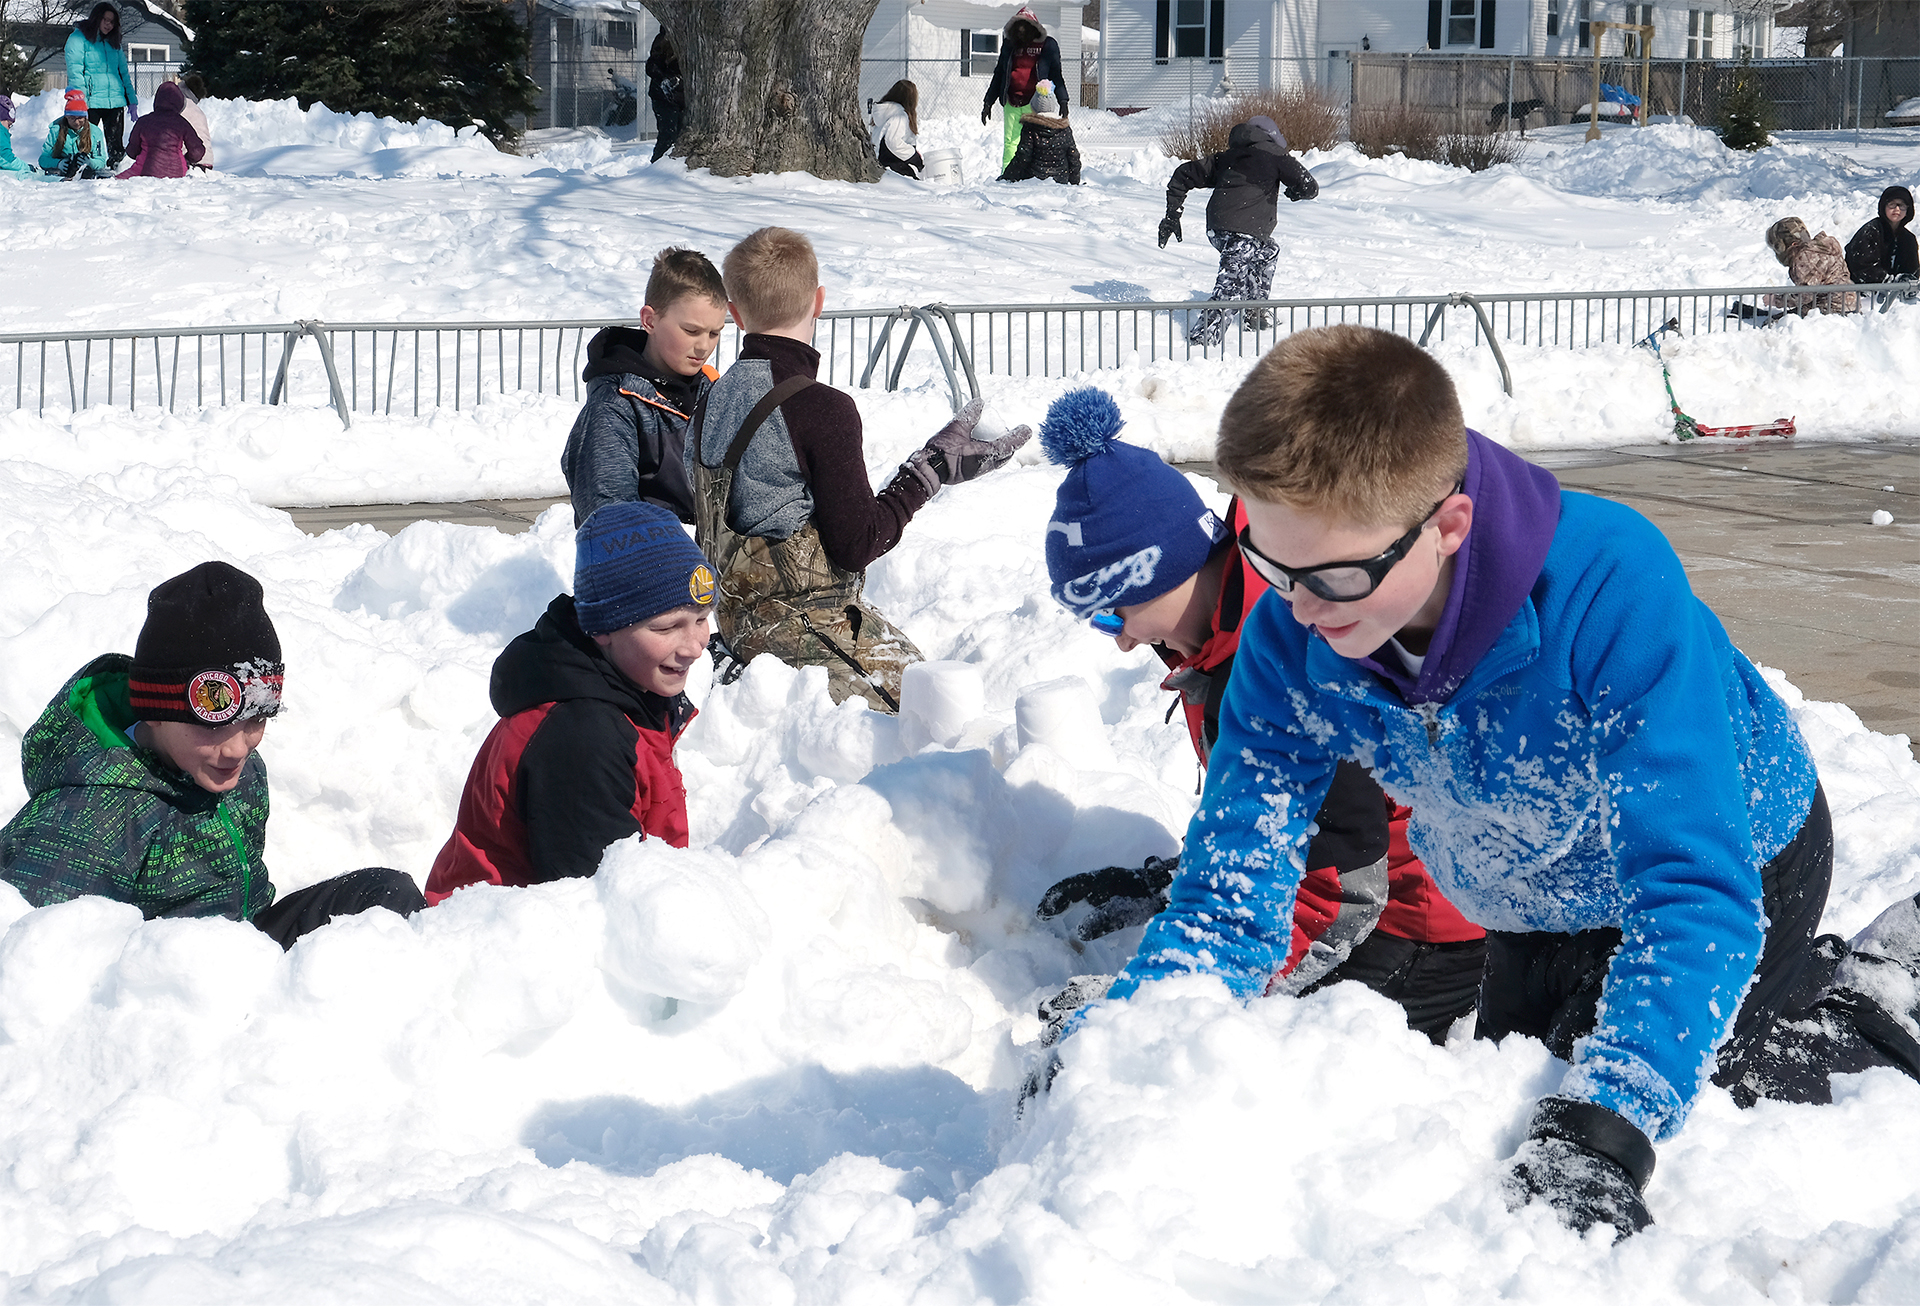 Boys build snow forts in the snow.